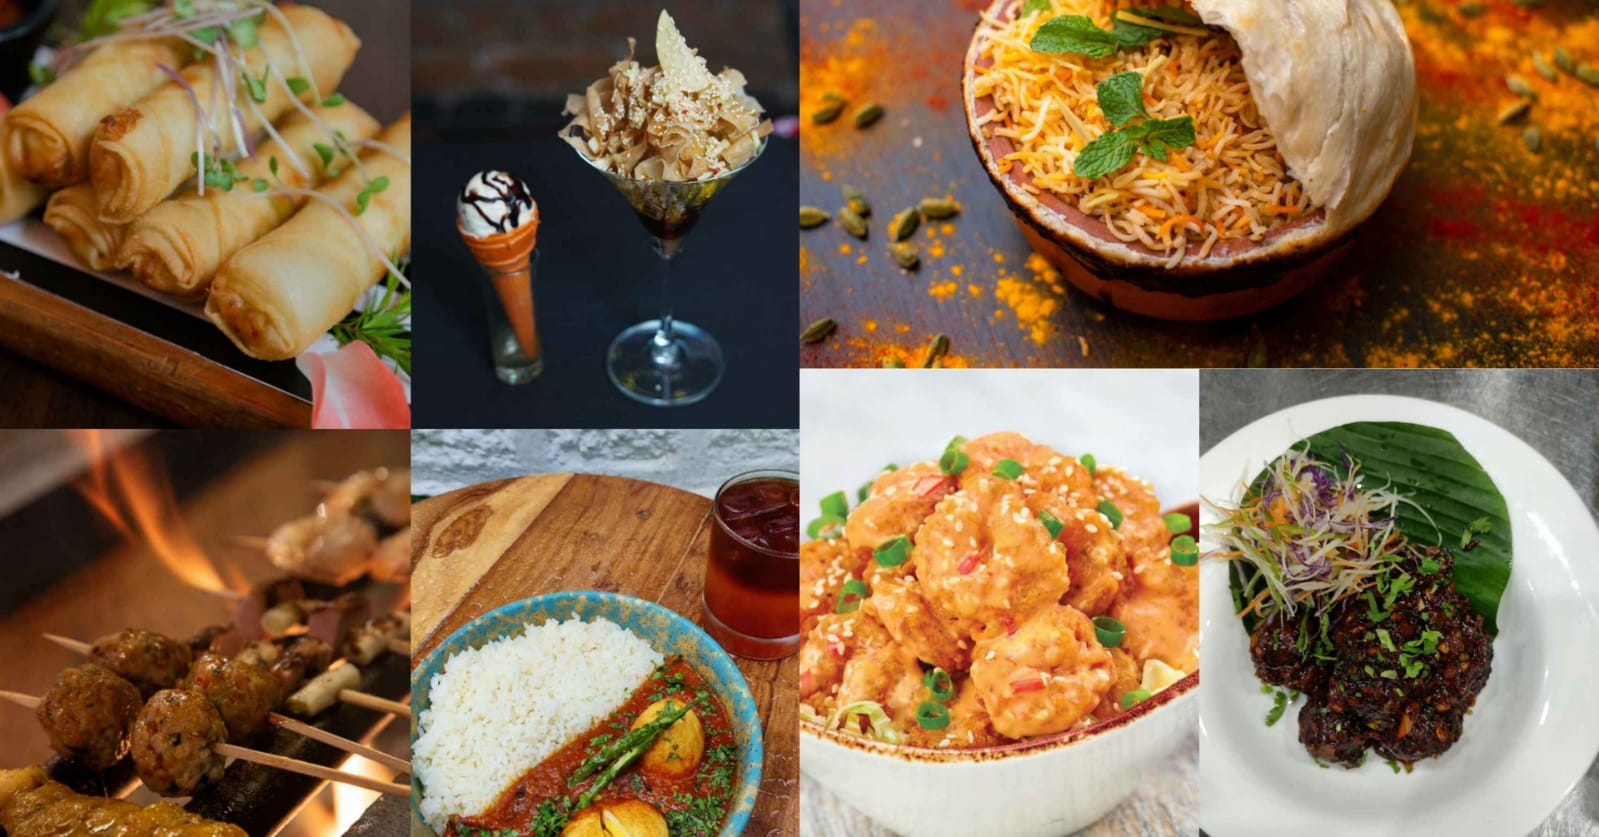 THE ULTIMATE FOOD DESTINATIONS TO DIG INTO THIS PUJA